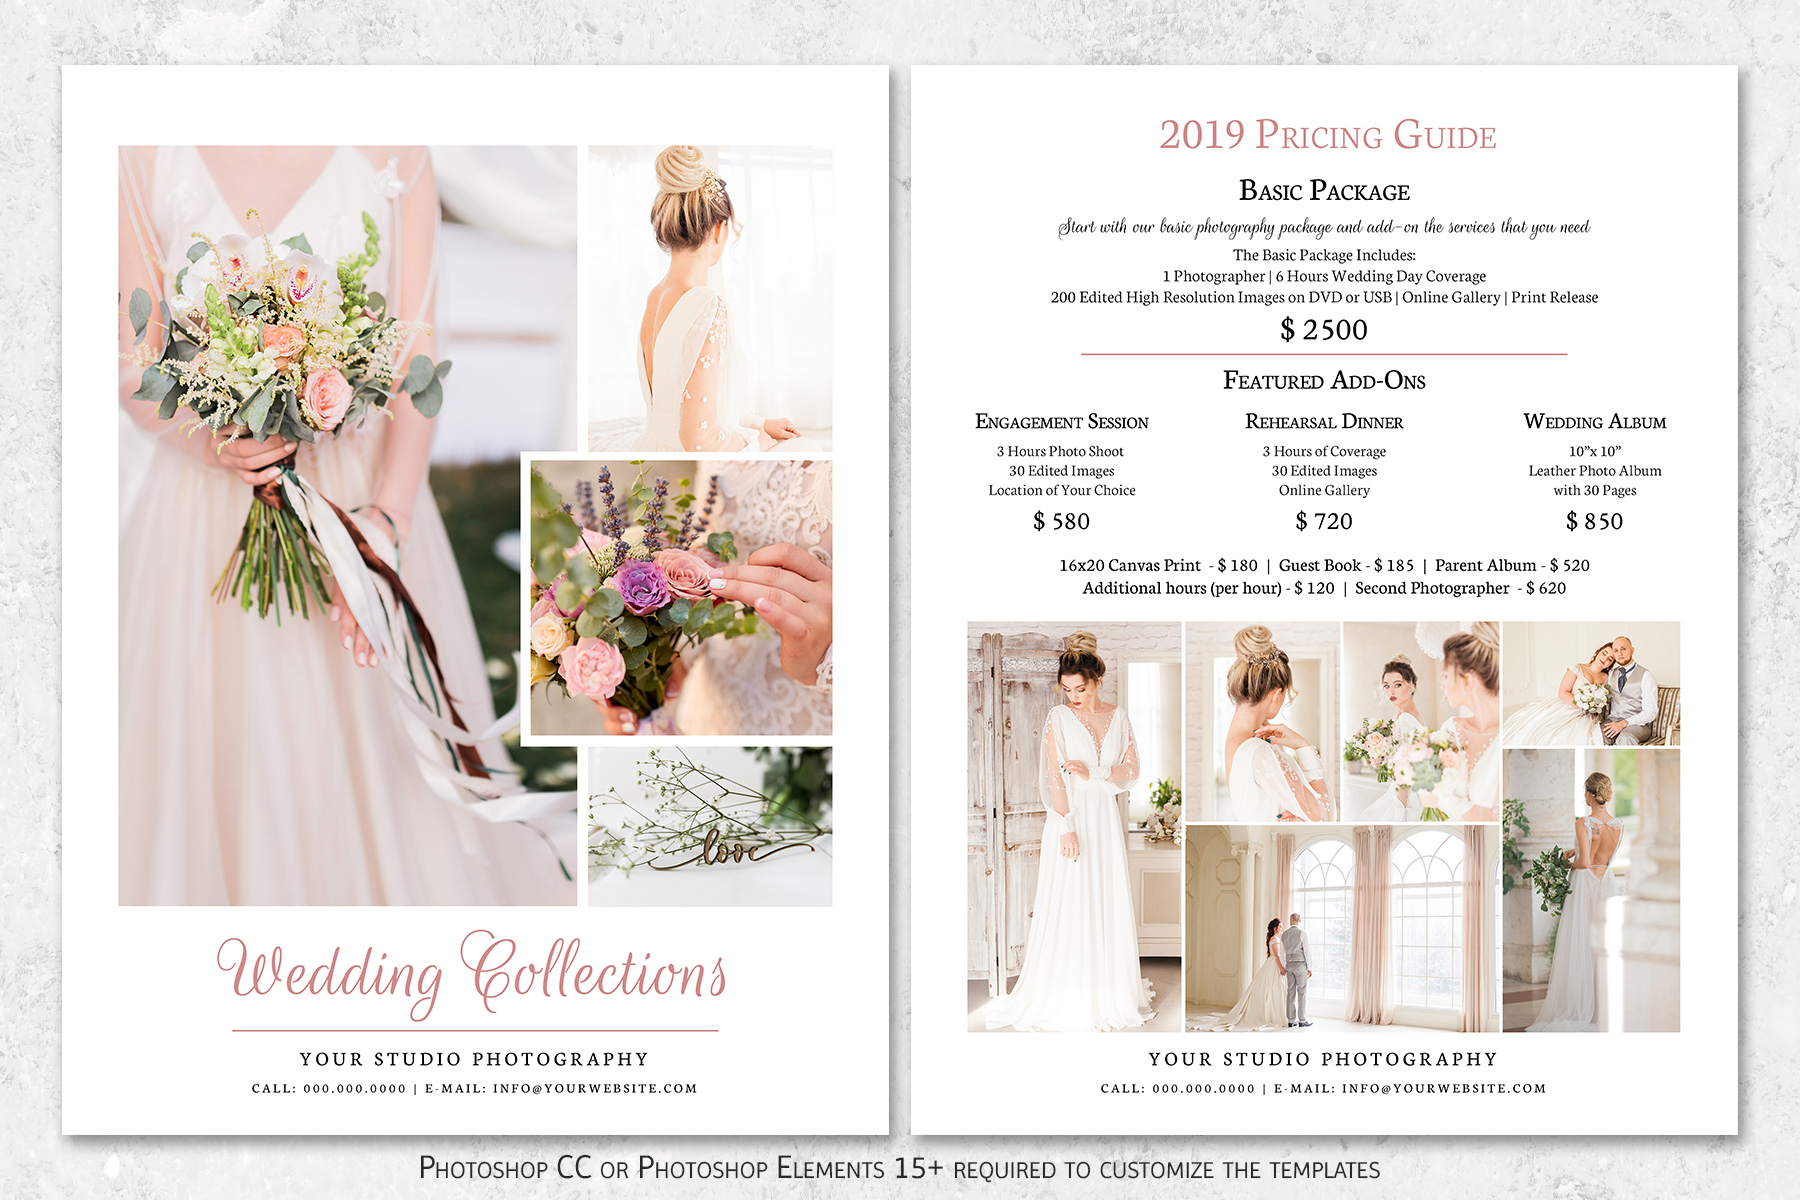 Wedding Photography Pricing Guide Template example image 1